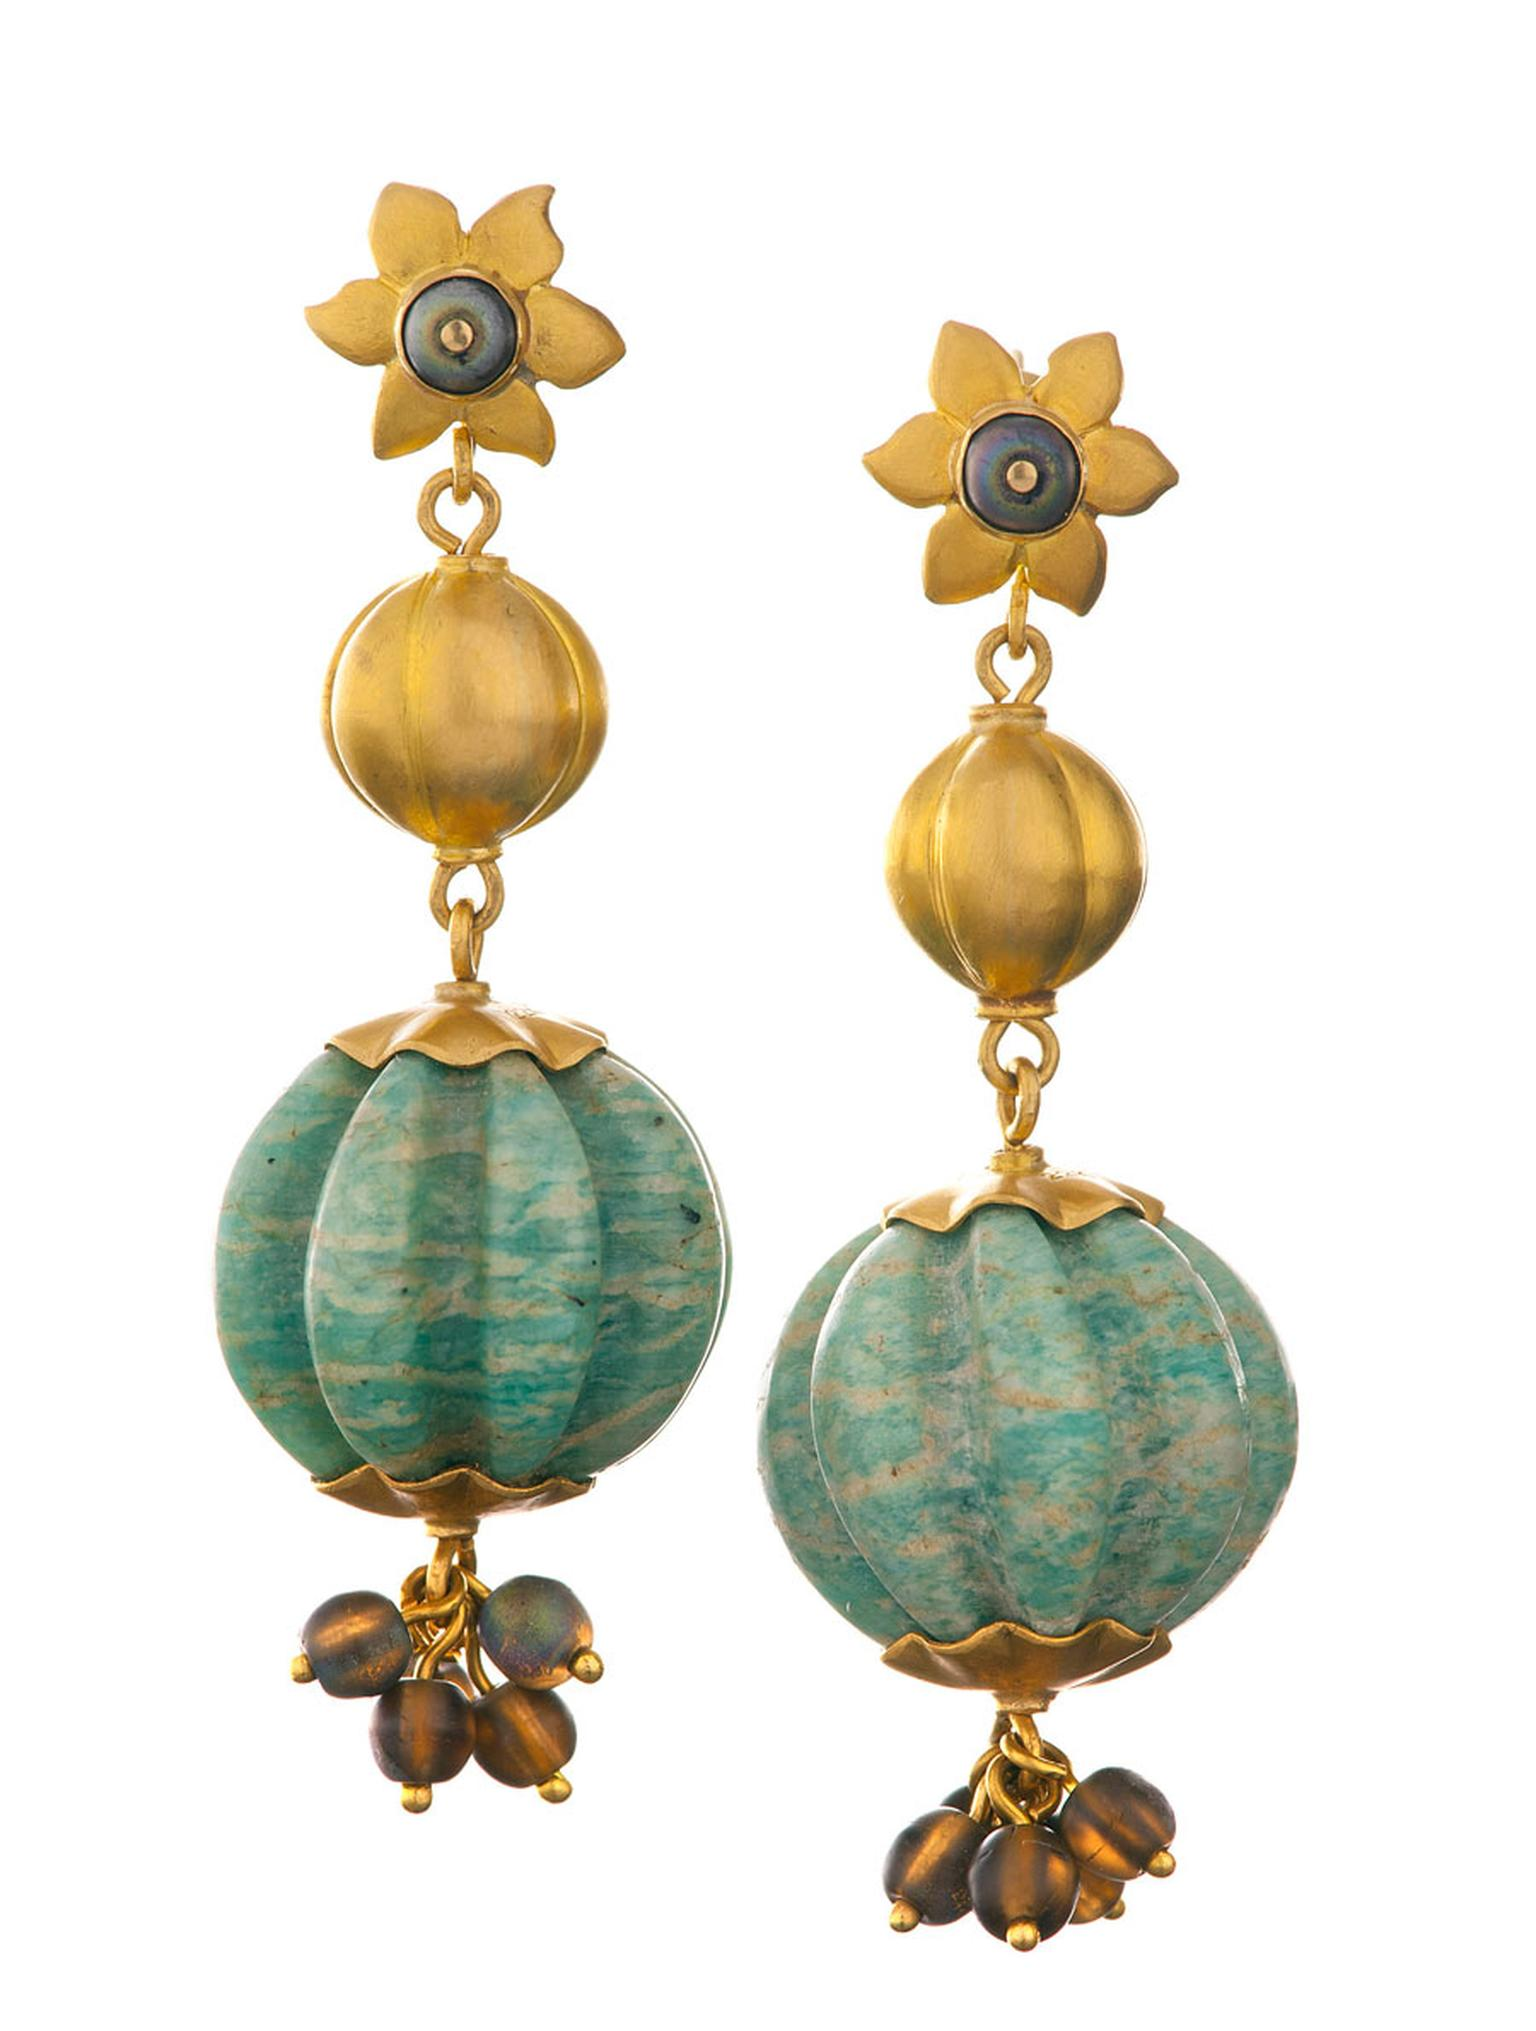 Lisa-Black-Turquoise-and-Gold-Melon-Bead-Earrings